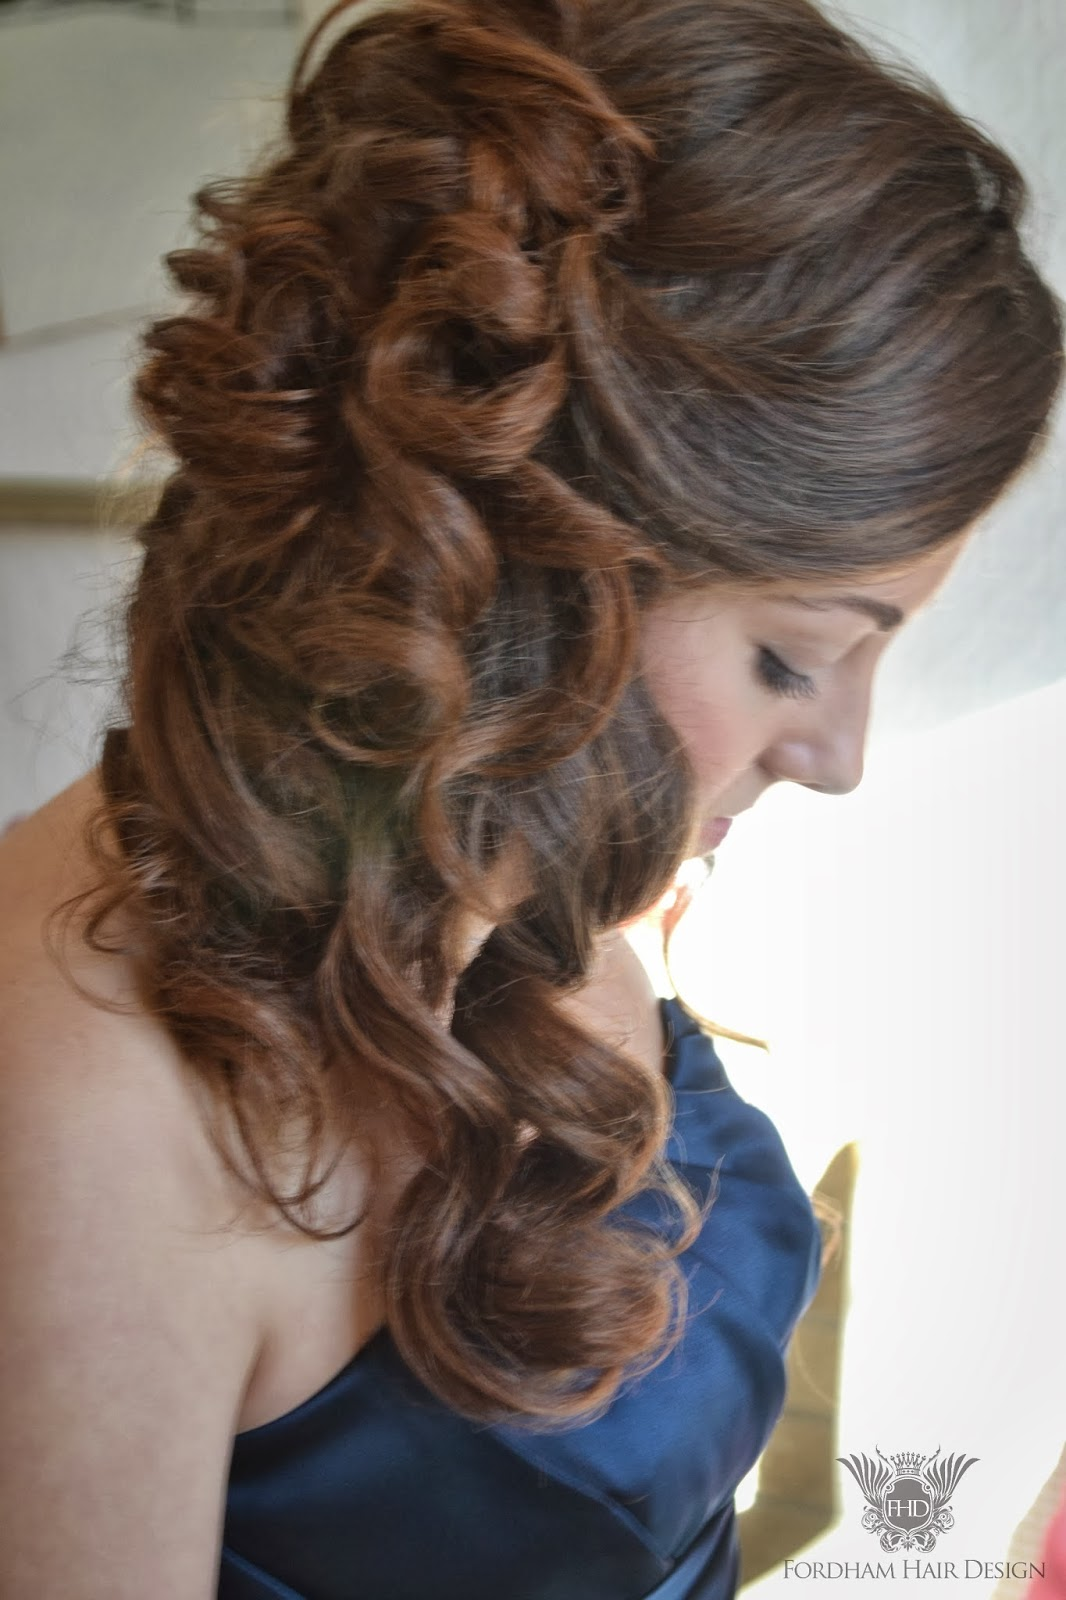 Fordham Hair Design Wedding Bridal Hair Specialist